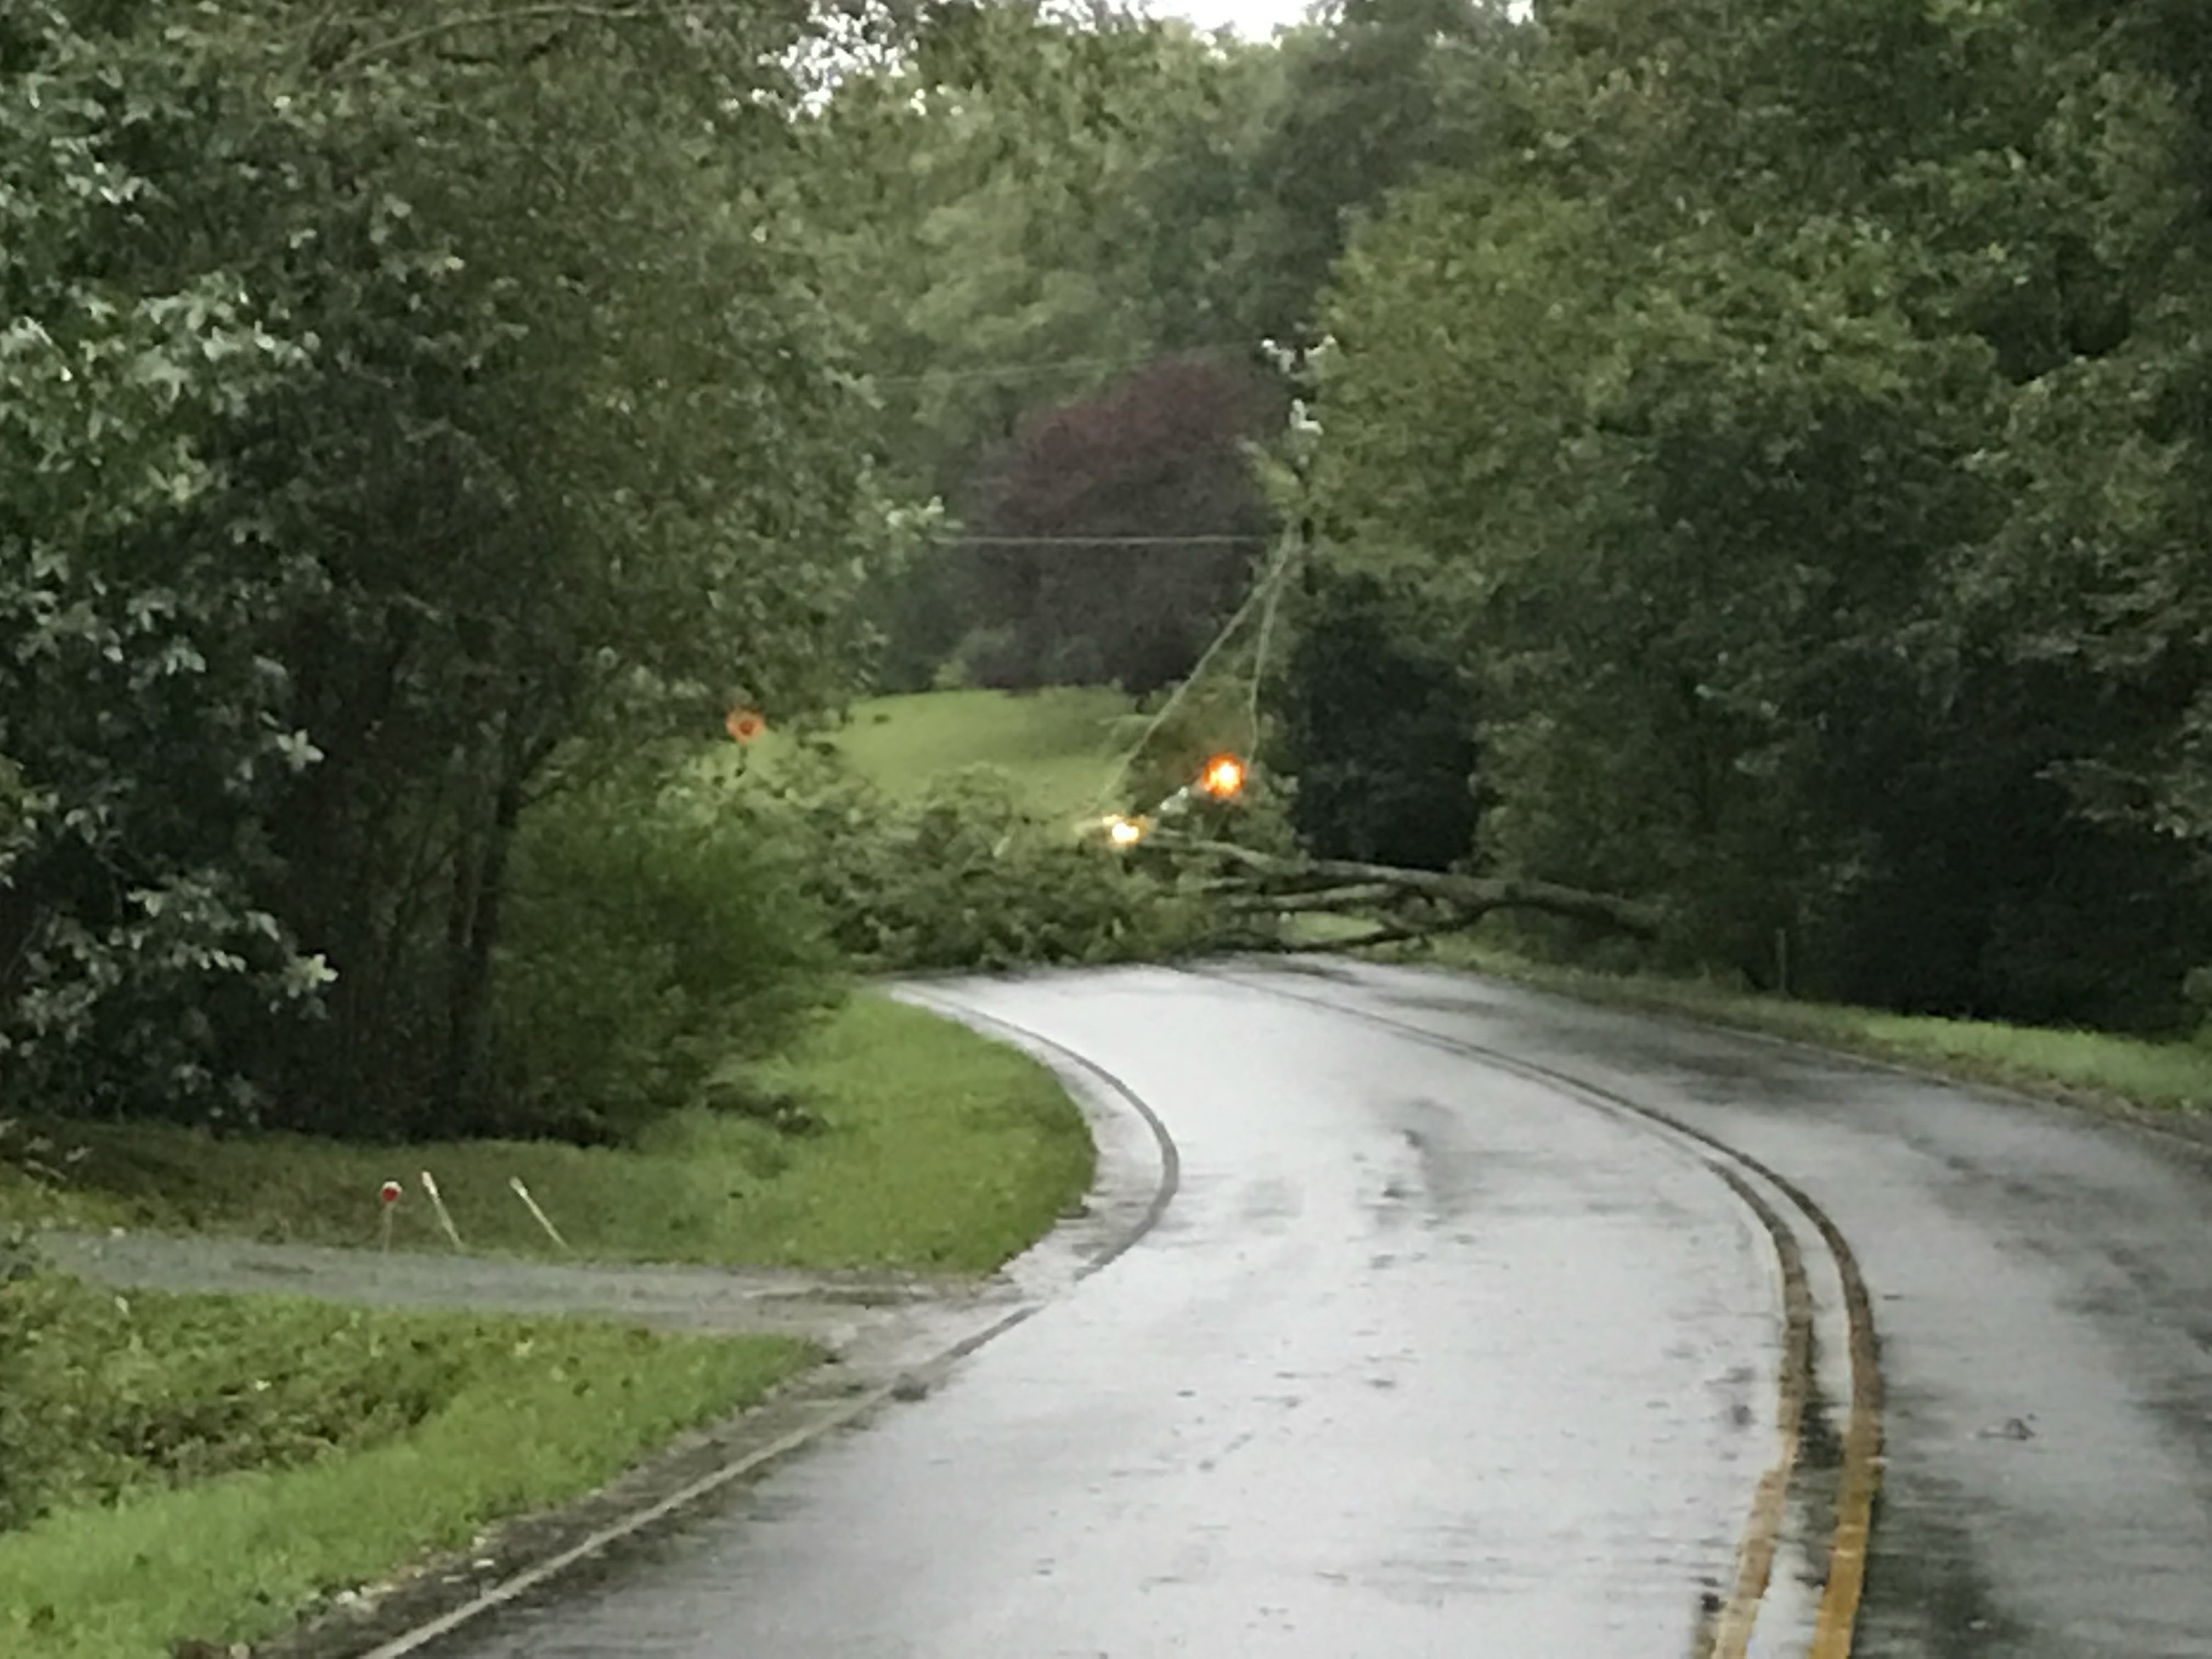 "<div class=""meta image-caption""><div class=""origin-logo origin-image wtvd""><span>WTVD</span></div><span class=""caption-text"">A fallen tree blocks Farrington Point Road in Chatham County and knocks out power in the neighborhood Friday. (Amy Gamber)</span></div>"